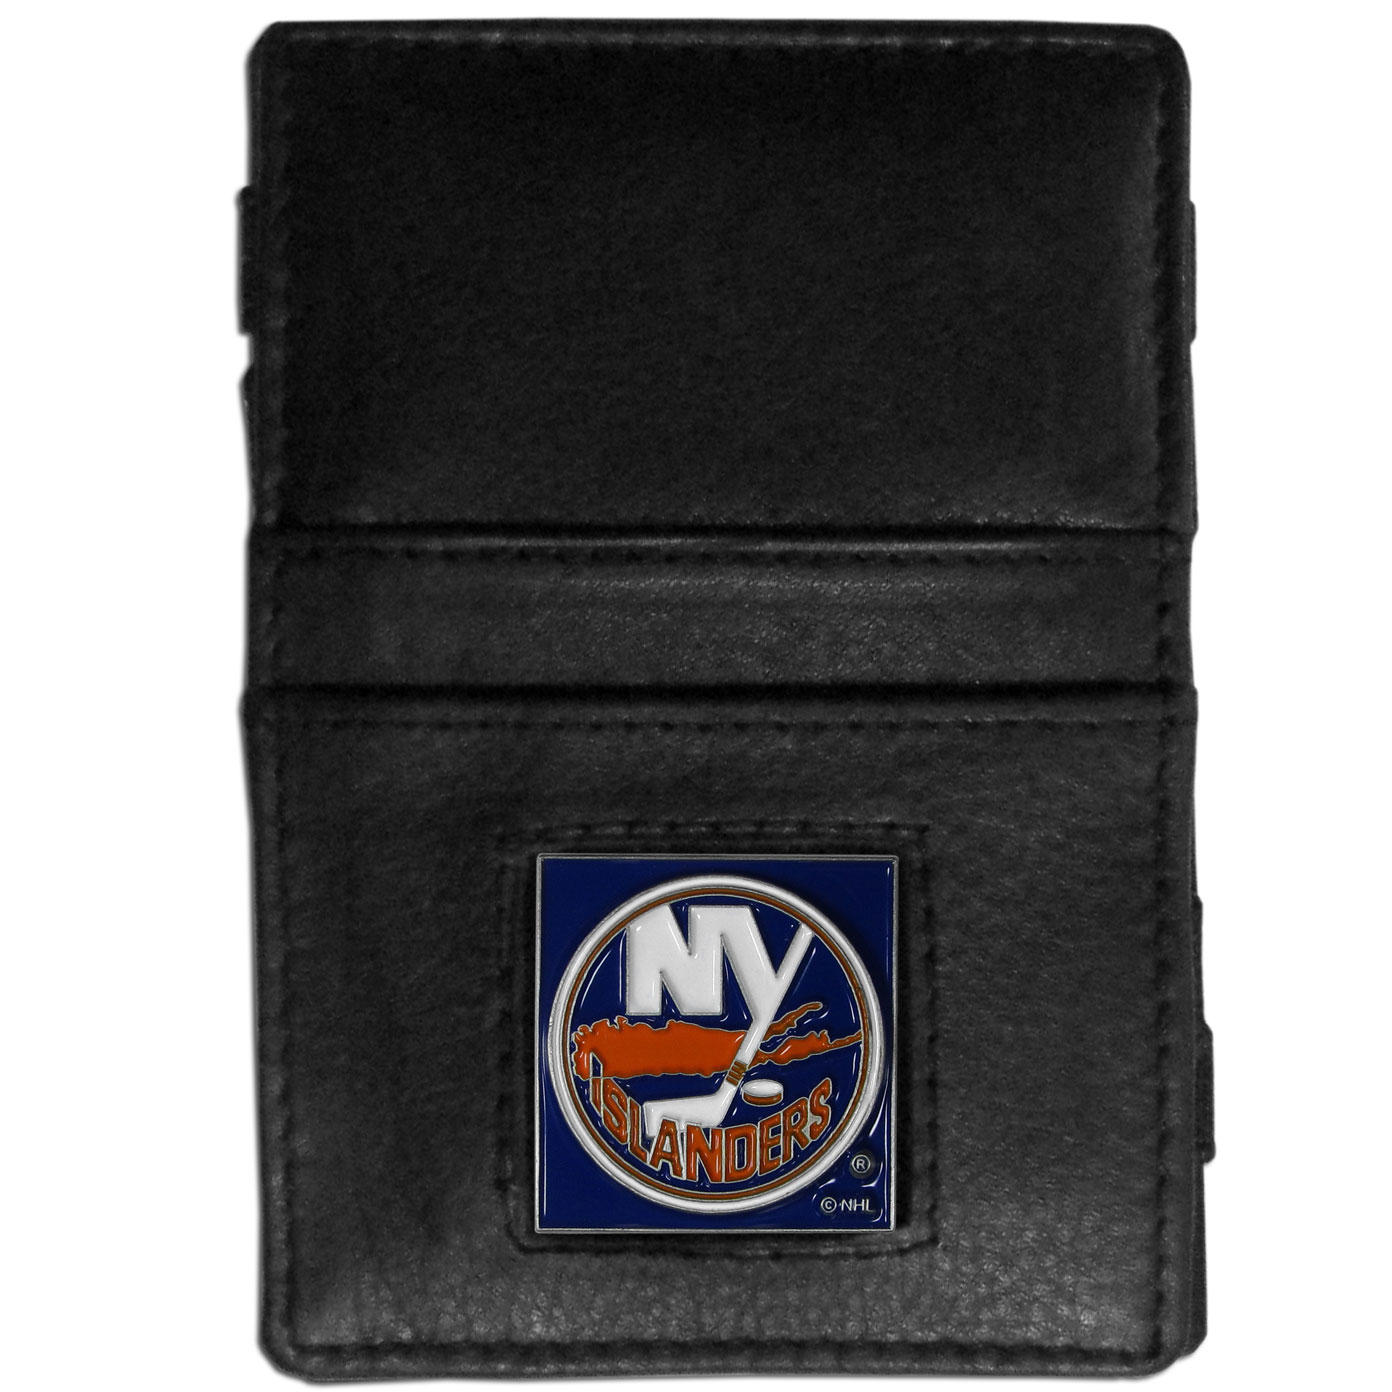 New York Islanders® Leather Jacob's Ladder Wallet - This officially licensed, innovative jacob's ladder wallet design traps cash with just a simple flip of the wallet! There are also outer pockets to store your ID and credit cards. The wallet is made of fine quality leather with a fully cast & enameled New York Islanders® emblem on the front.